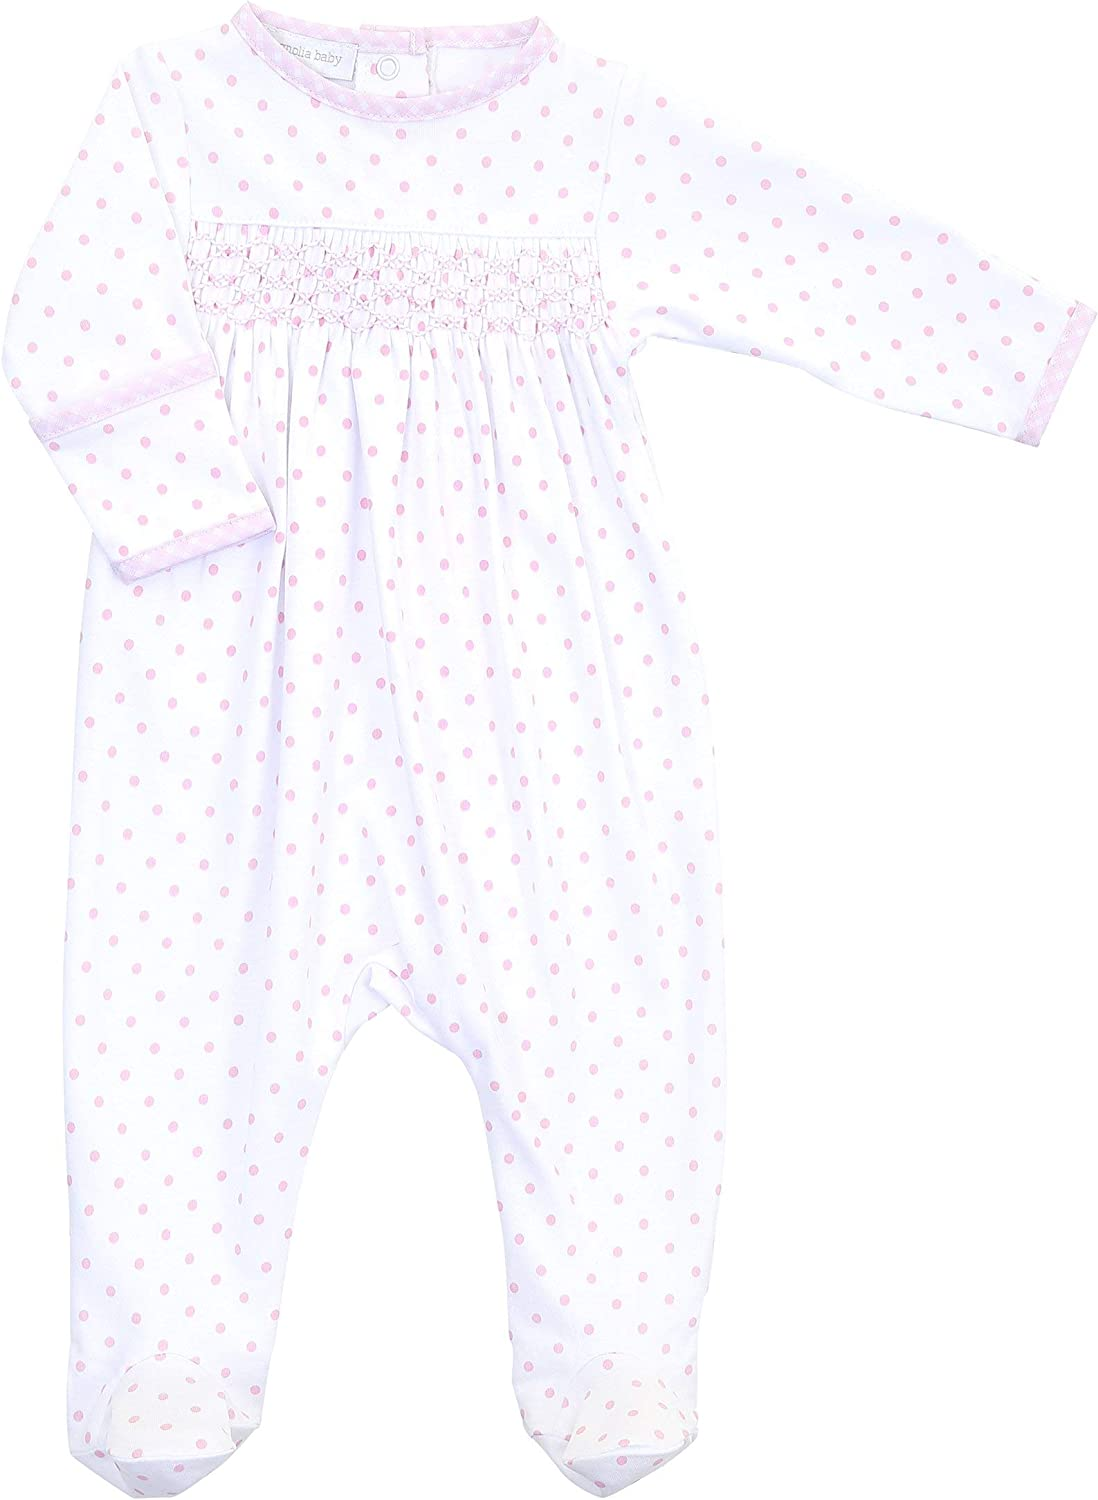 Magnolia Max 55% OFF Baby Girl Gingham Dots Award Footie P Essentials Smocked